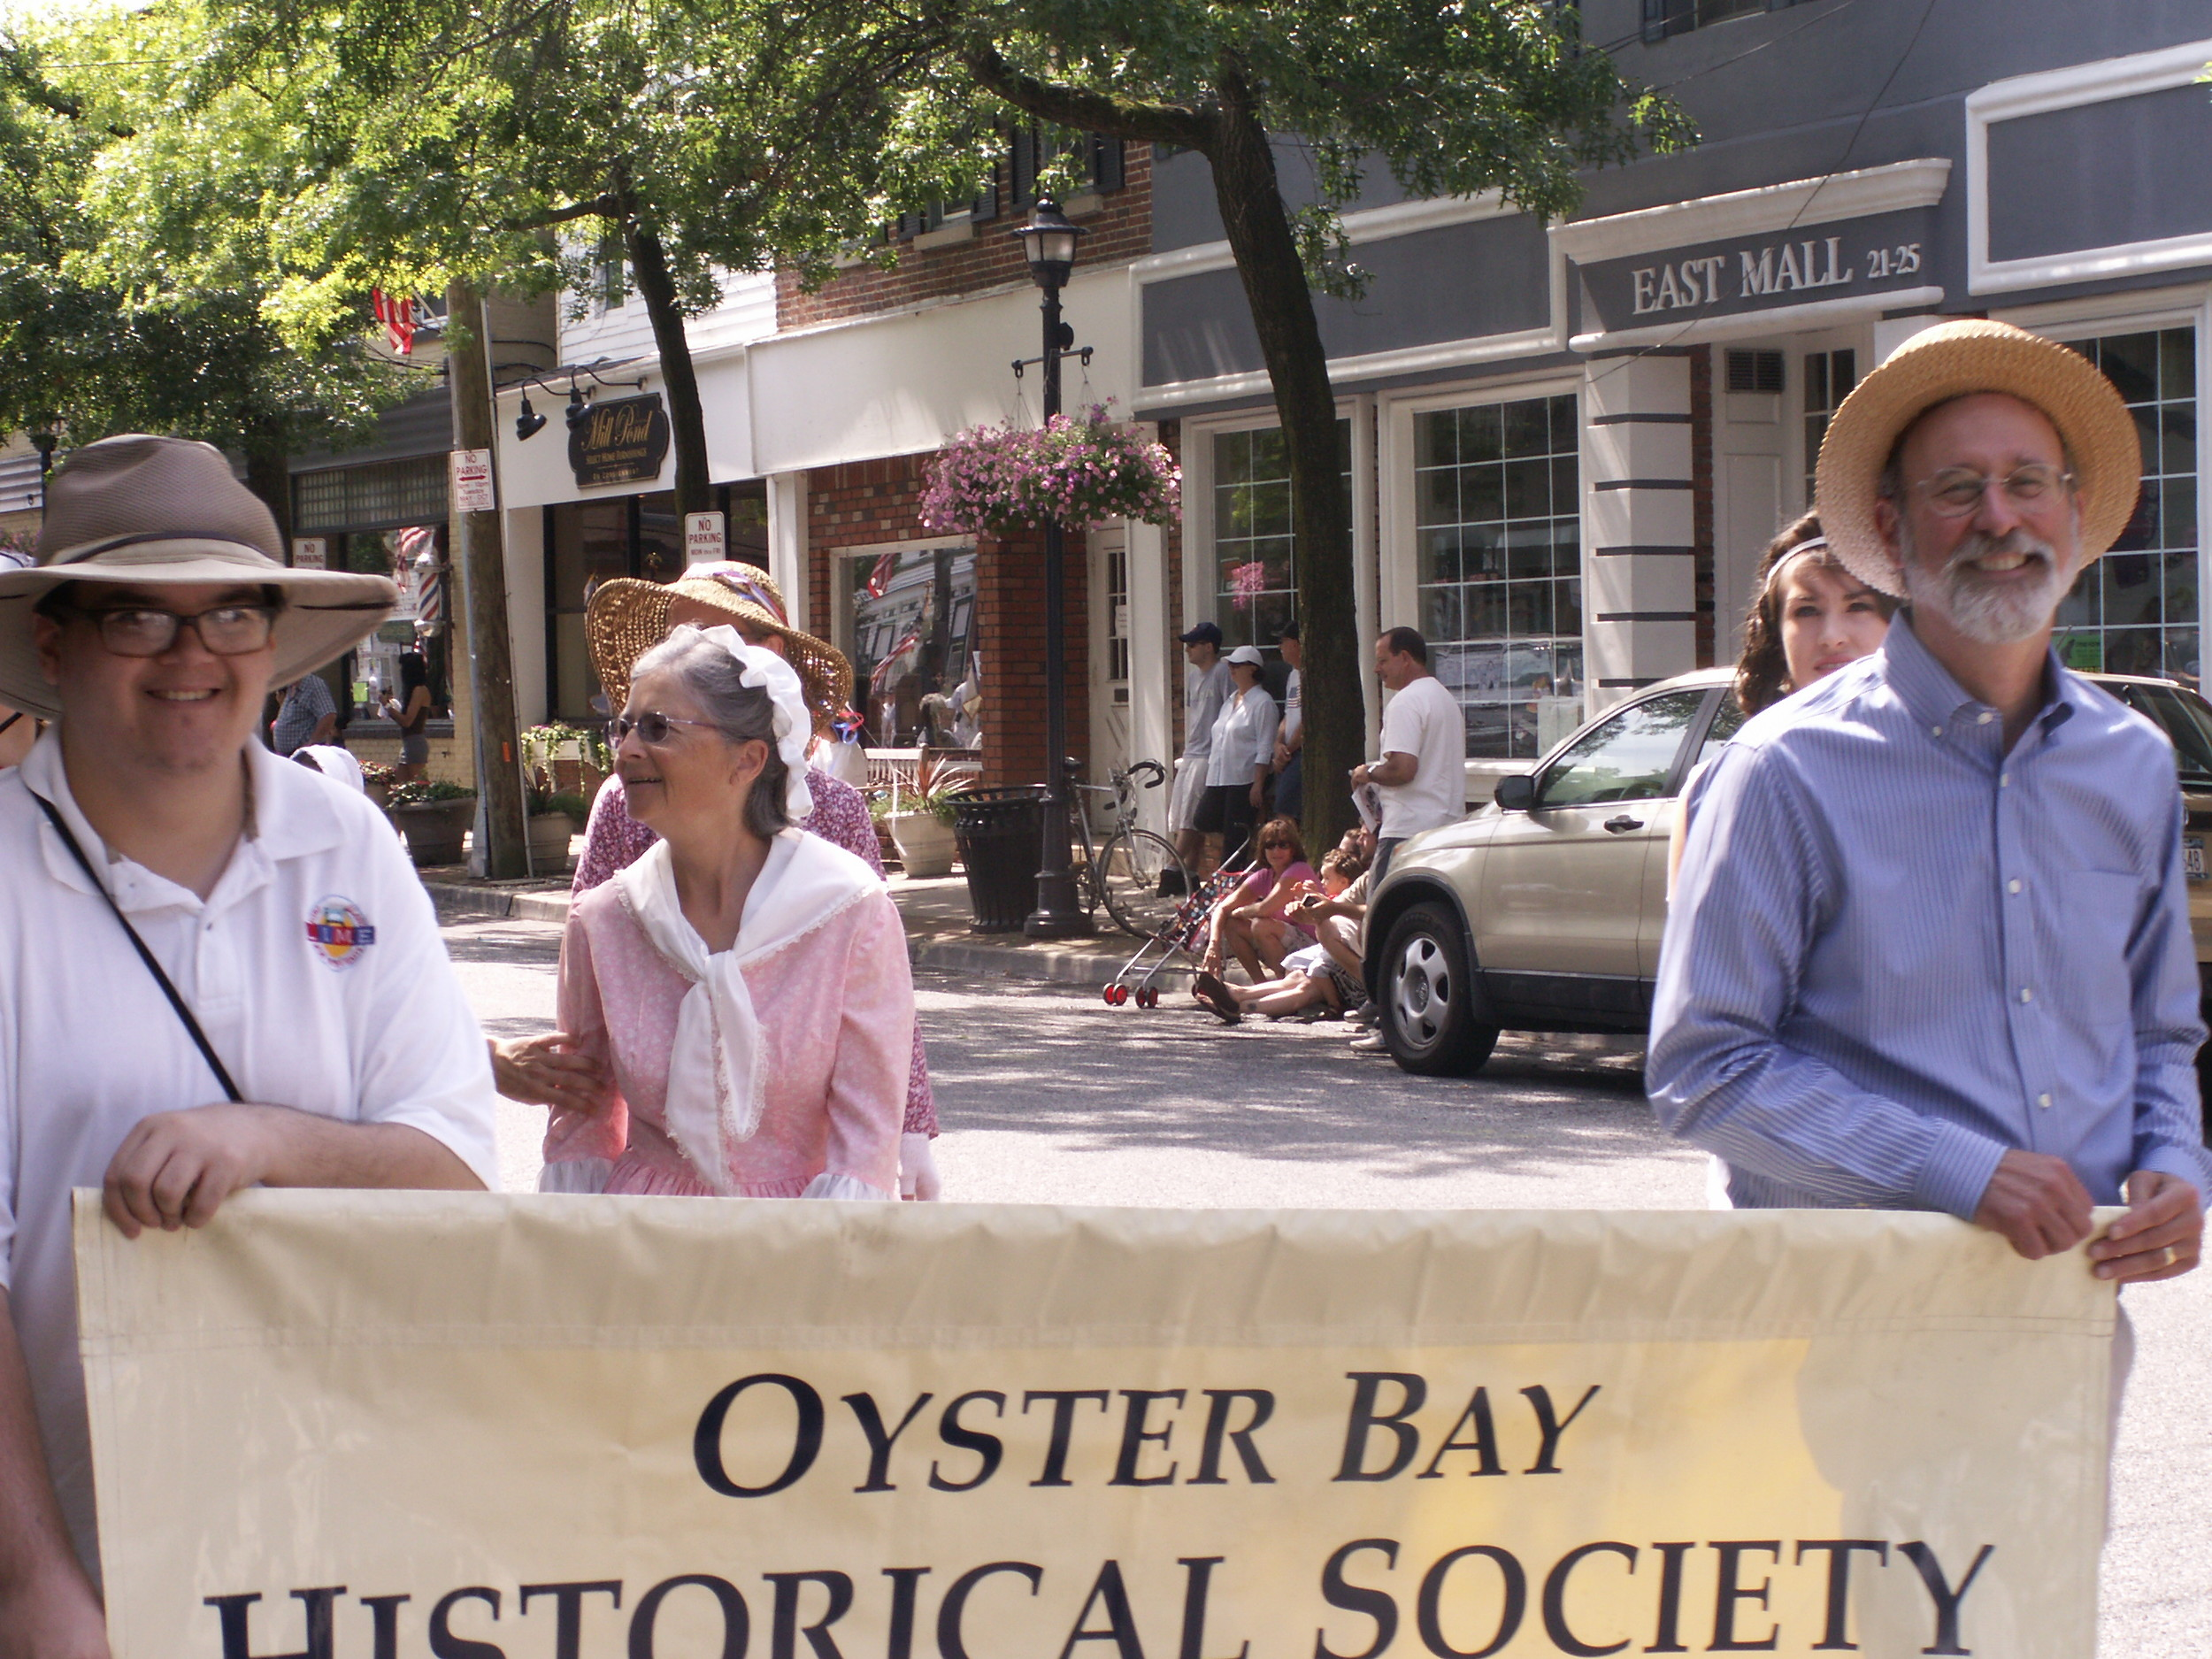 Phillip Blocklyn, director of the Oyster Bay Historical Society, and Nicole Manchise at a society ice cream social. Blocklyn will soon be retiring.